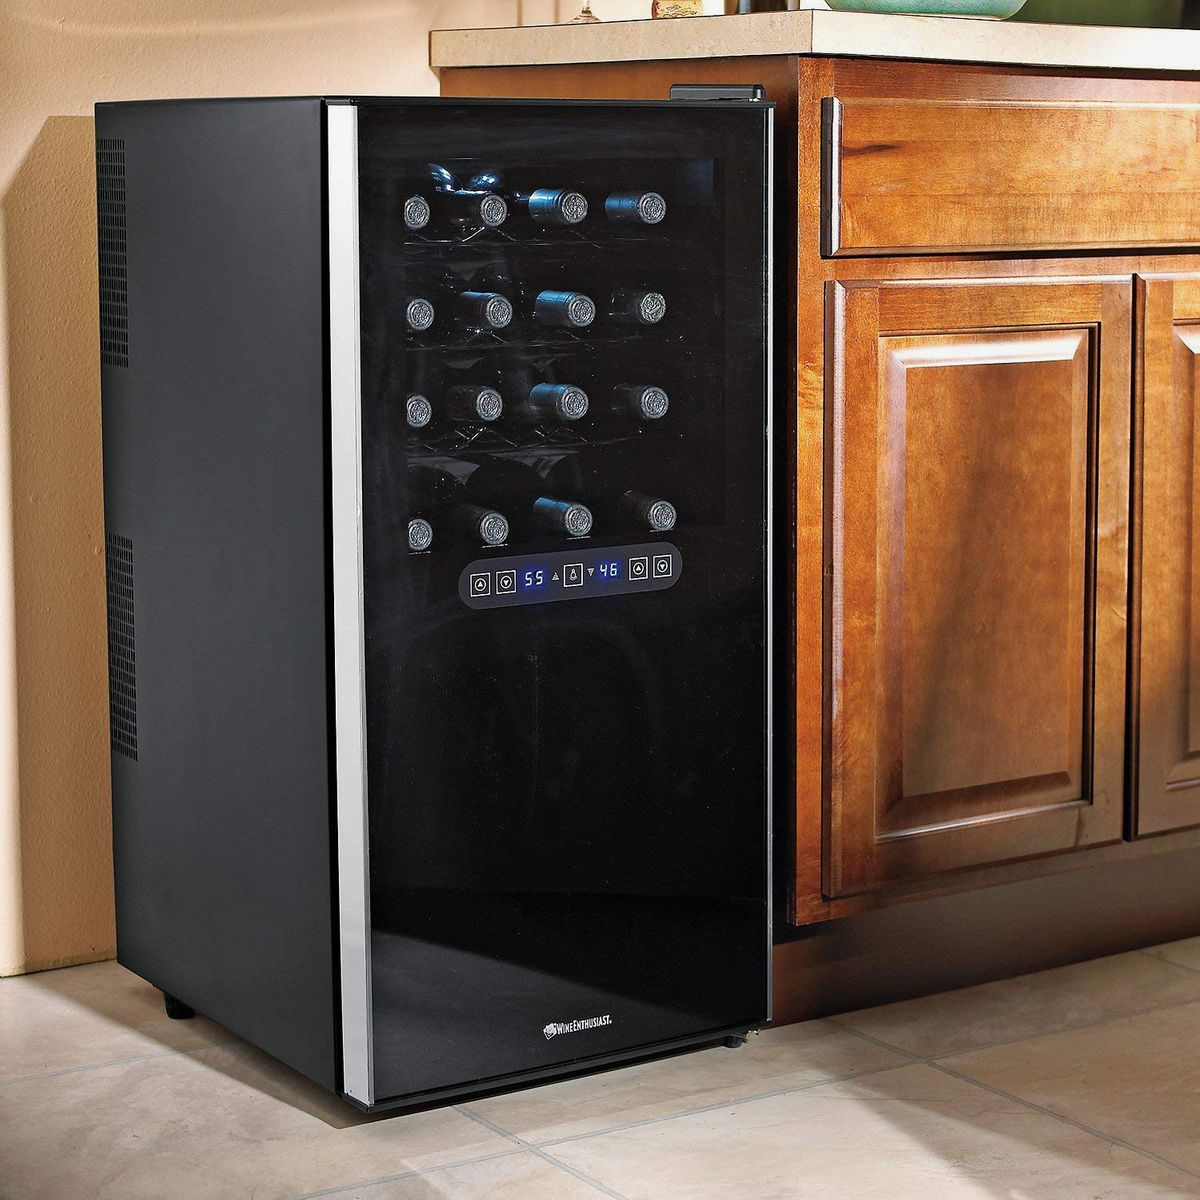 10 Best Wine Coolers And Fridges